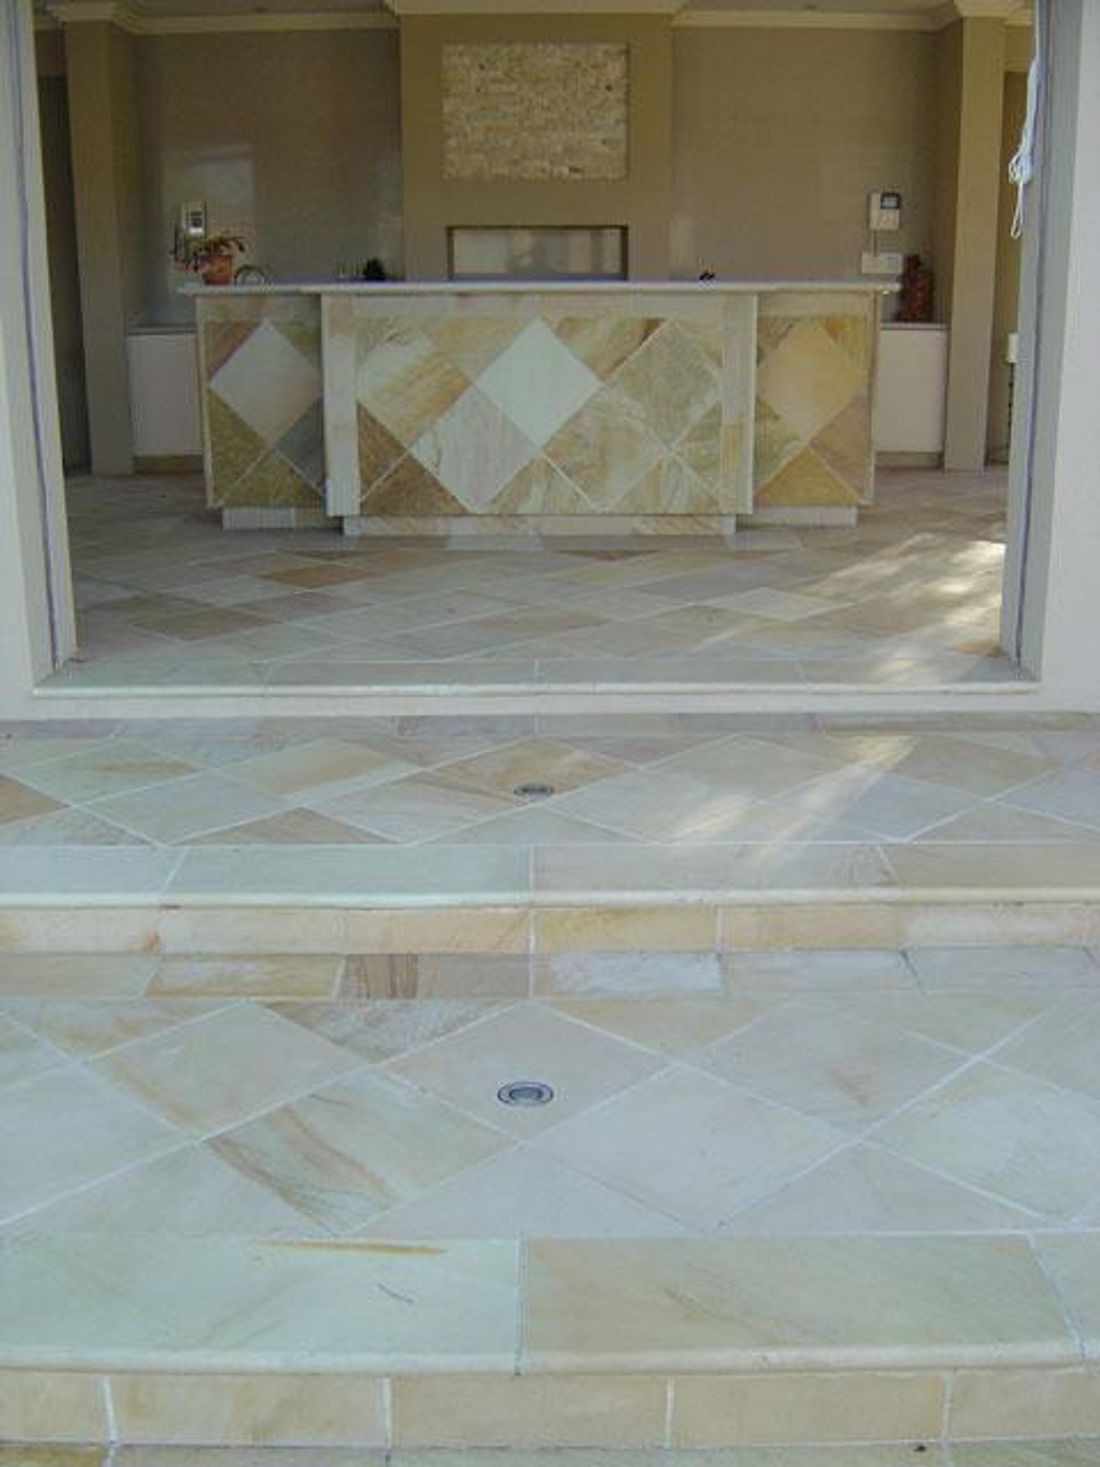 Why use indoor pavers as a flooring option hipages indoor bricks for example are thinner than outdoor bricks but can be laid in a variety of patterns or mixed with other flooring dailygadgetfo Images